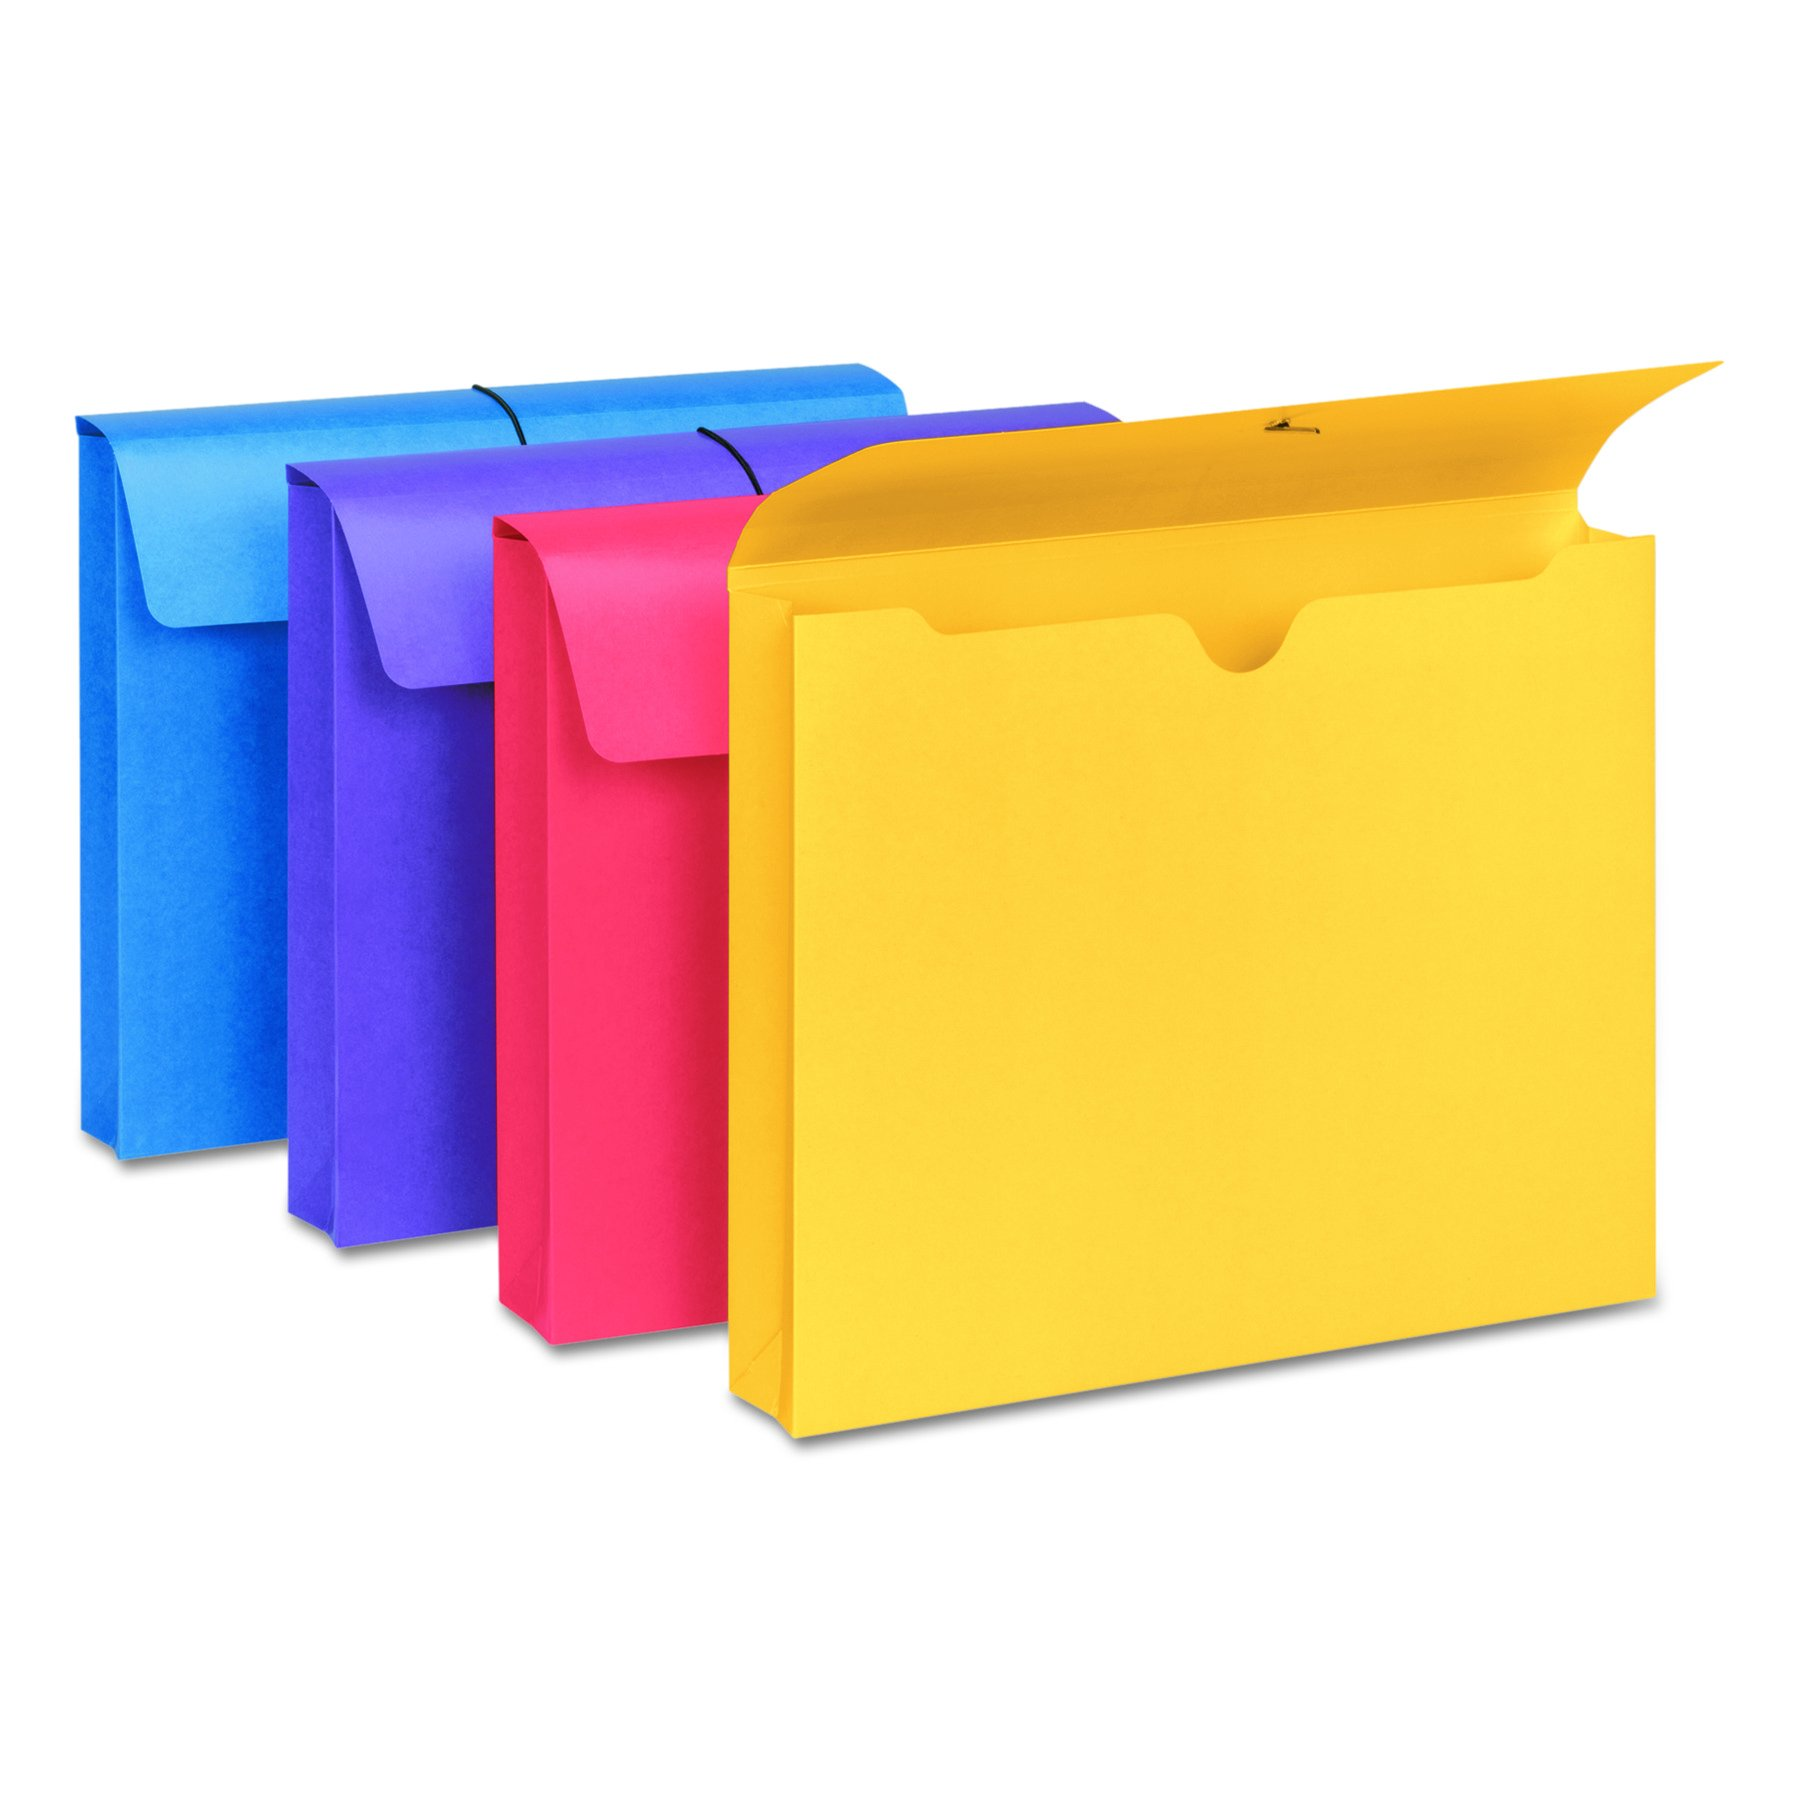 Smead 77291 2'' Exp Antimicrobial File Wallet, Letter, Four Colors (Pack of 4) by Smead (Image #2)